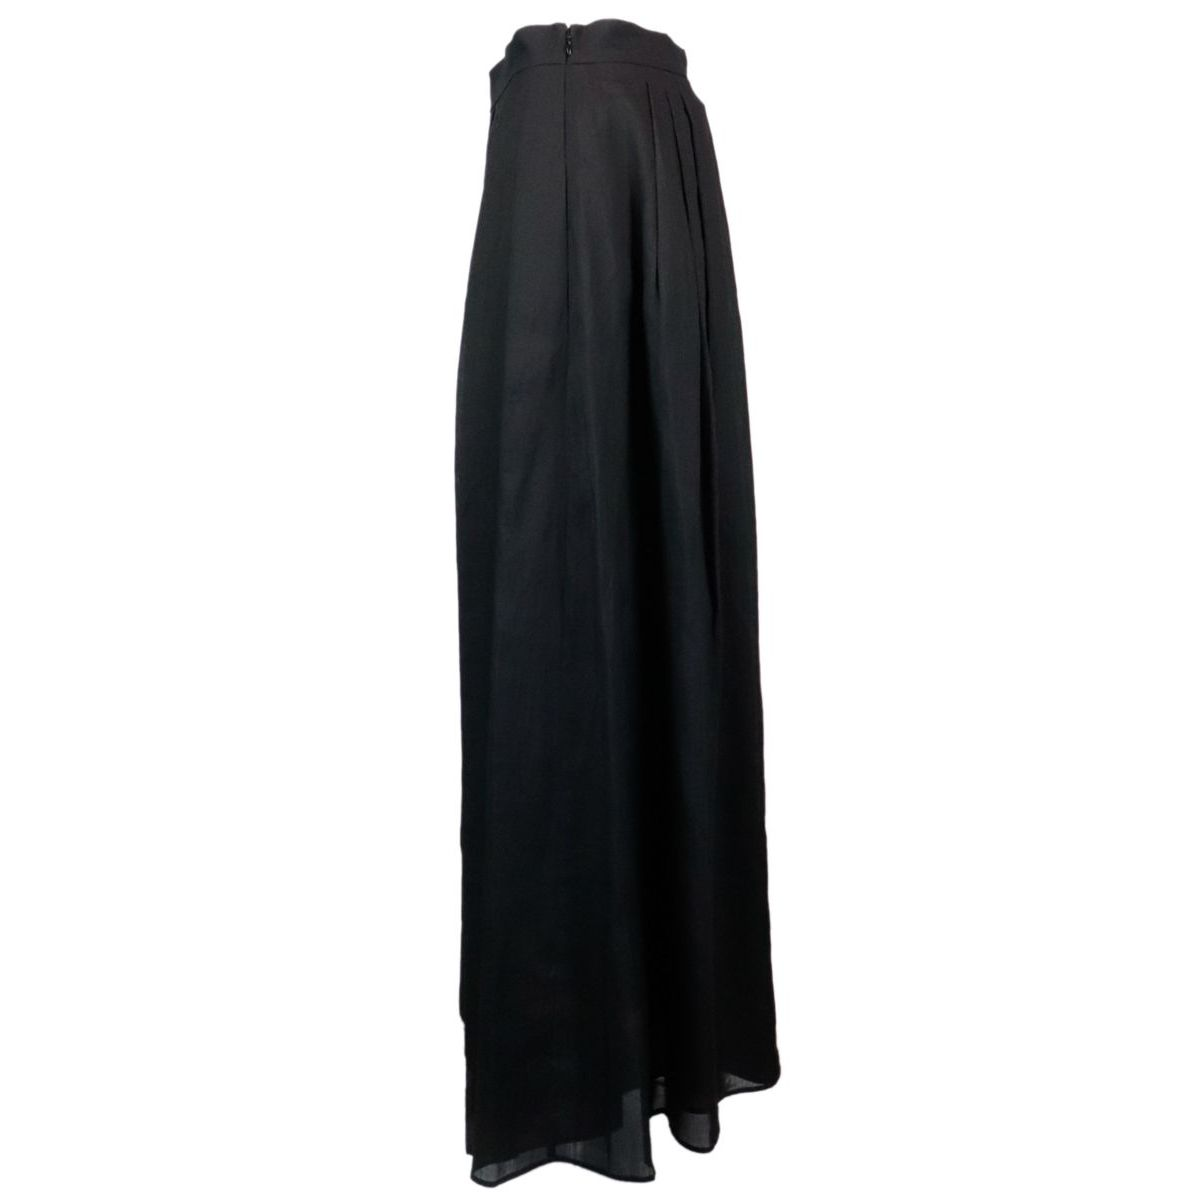 Marusca wide cotton skirt with pleats Black Max Mara